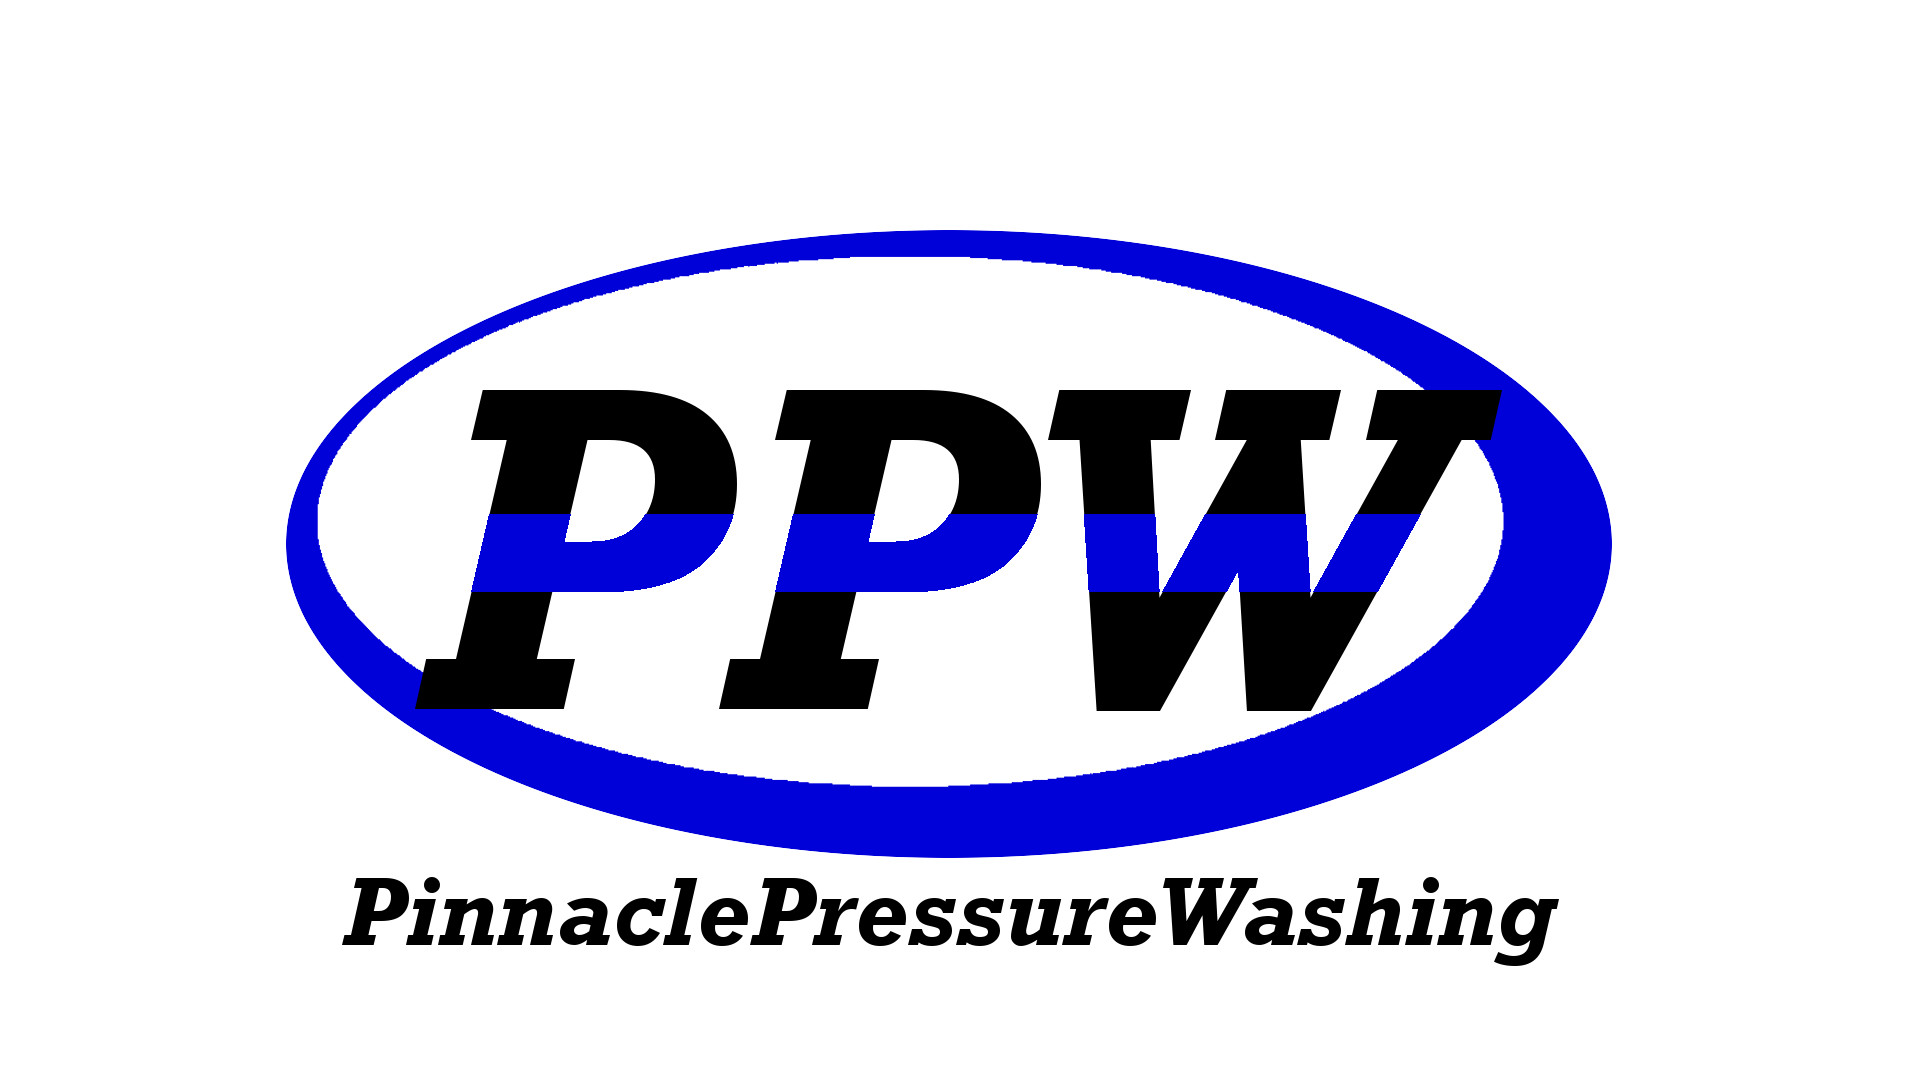 Pinnacle Pressure